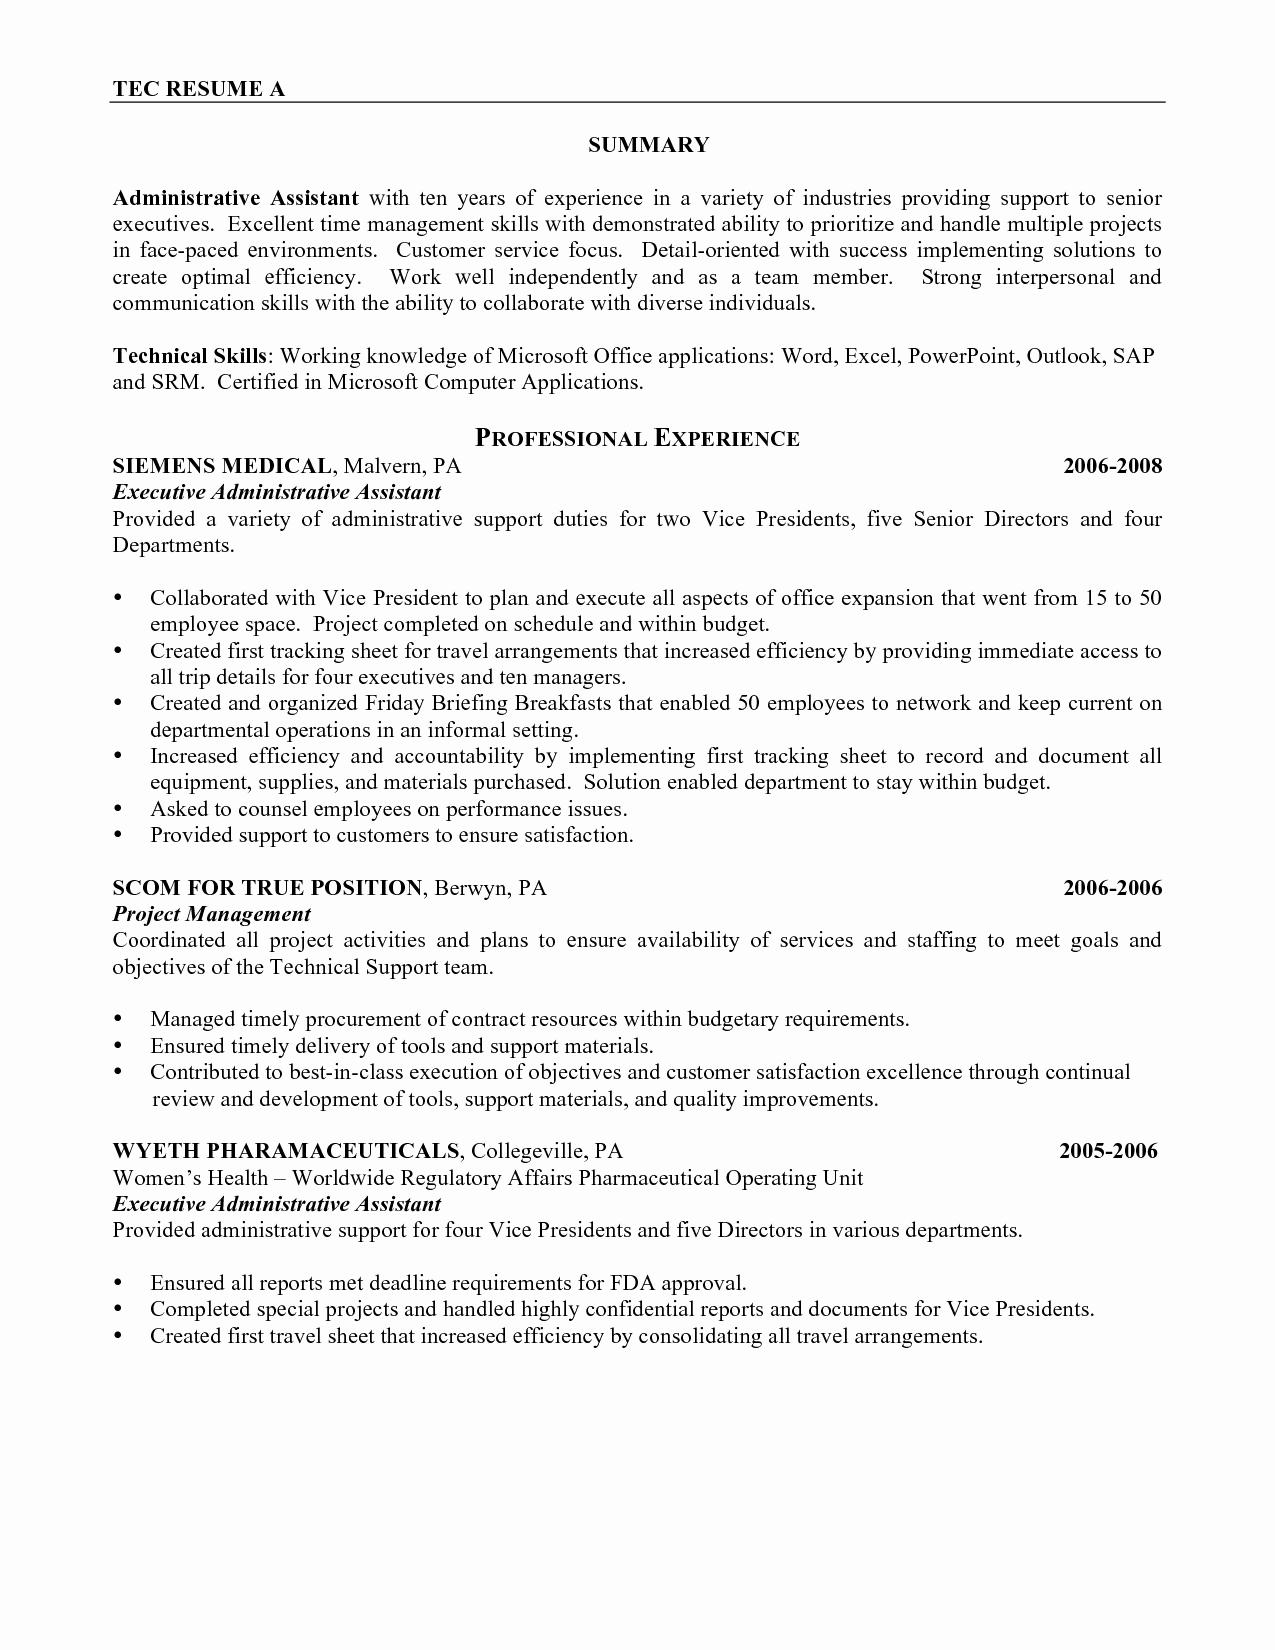 Cover Letter Template for Administrative assistant Job - Administrative assistant Cover Letter Template Awesome Admin